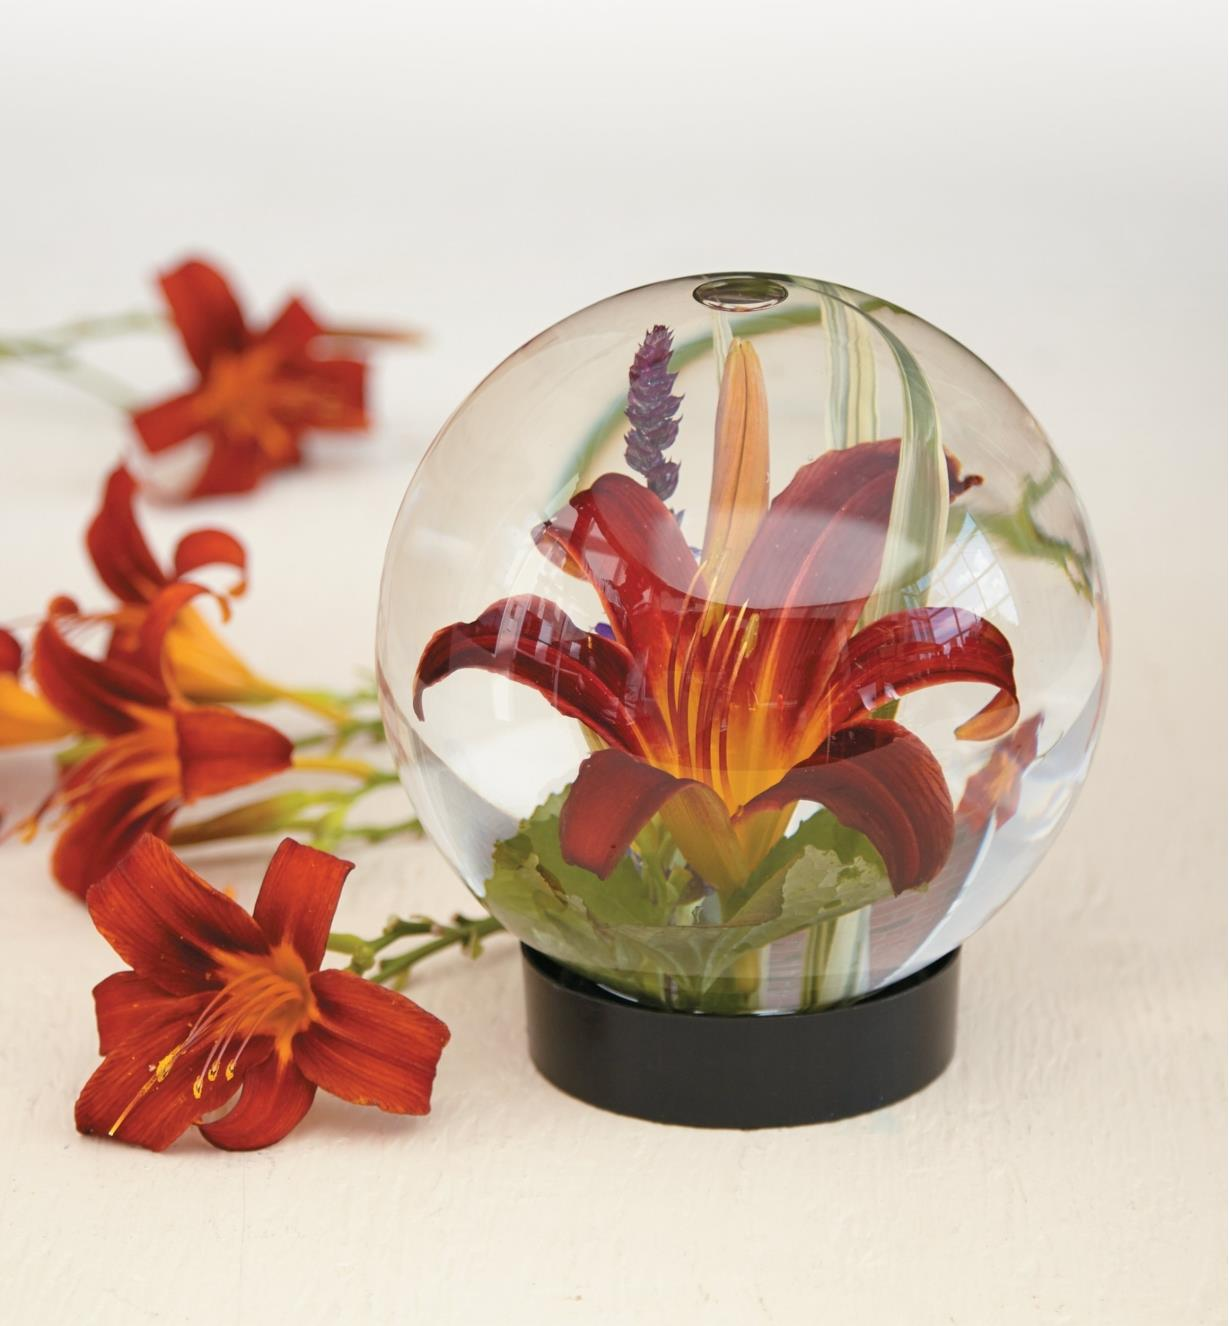 Flower Aquarium filled with water with a daylily inside